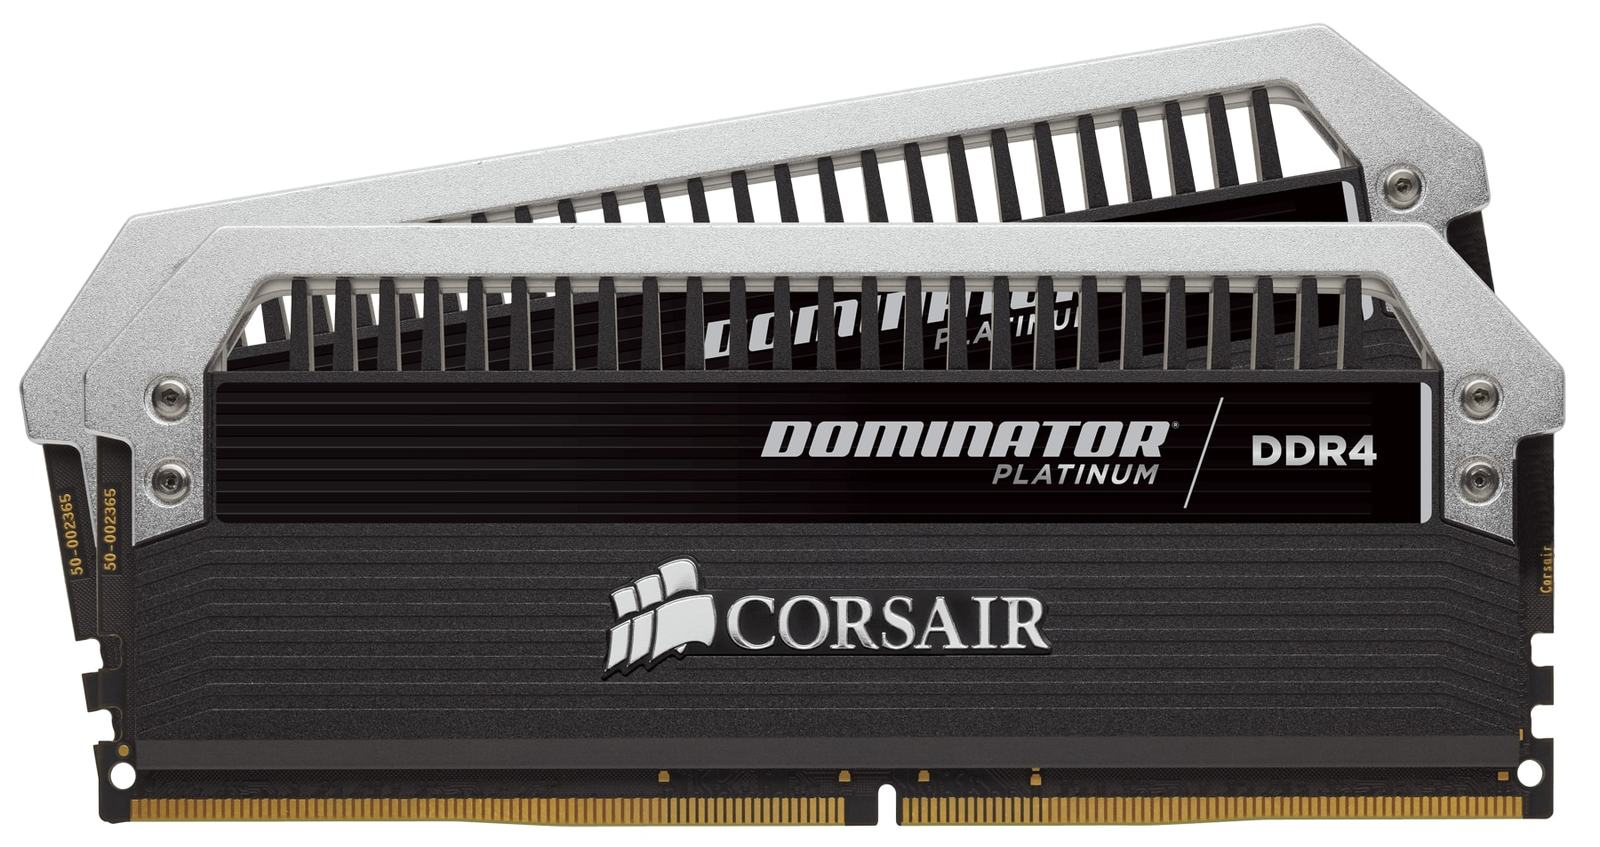 8GB Corsair Dominator Platinum Series (2 x 4GB) DDR4 DRAM 3200MHz C16 Memory Kit image